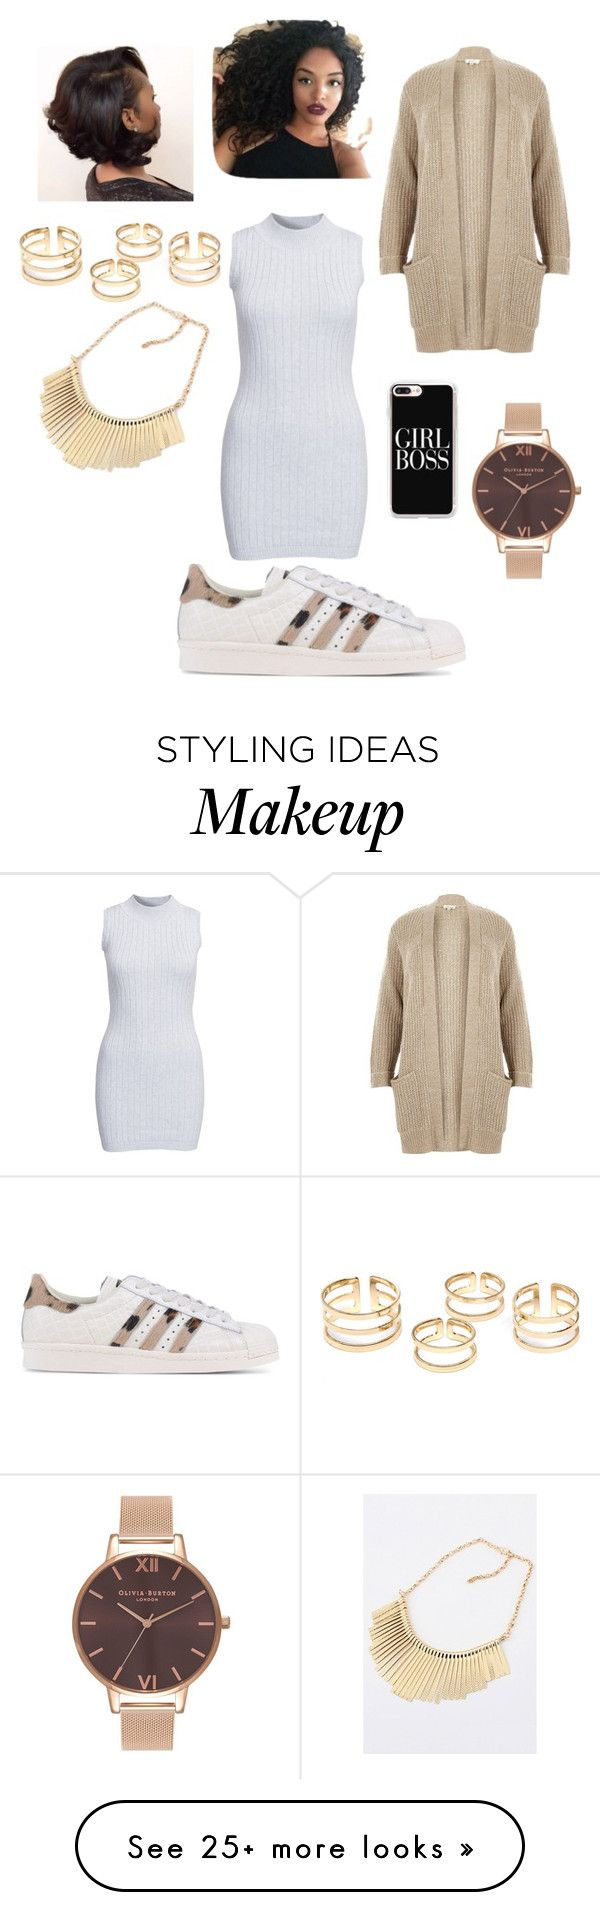 """""""Jan.19,2017✊"""" by sqkia on Polyvore featuring Glamorous, adidas Originals, River Island, Casetify and Olivia Burton"""